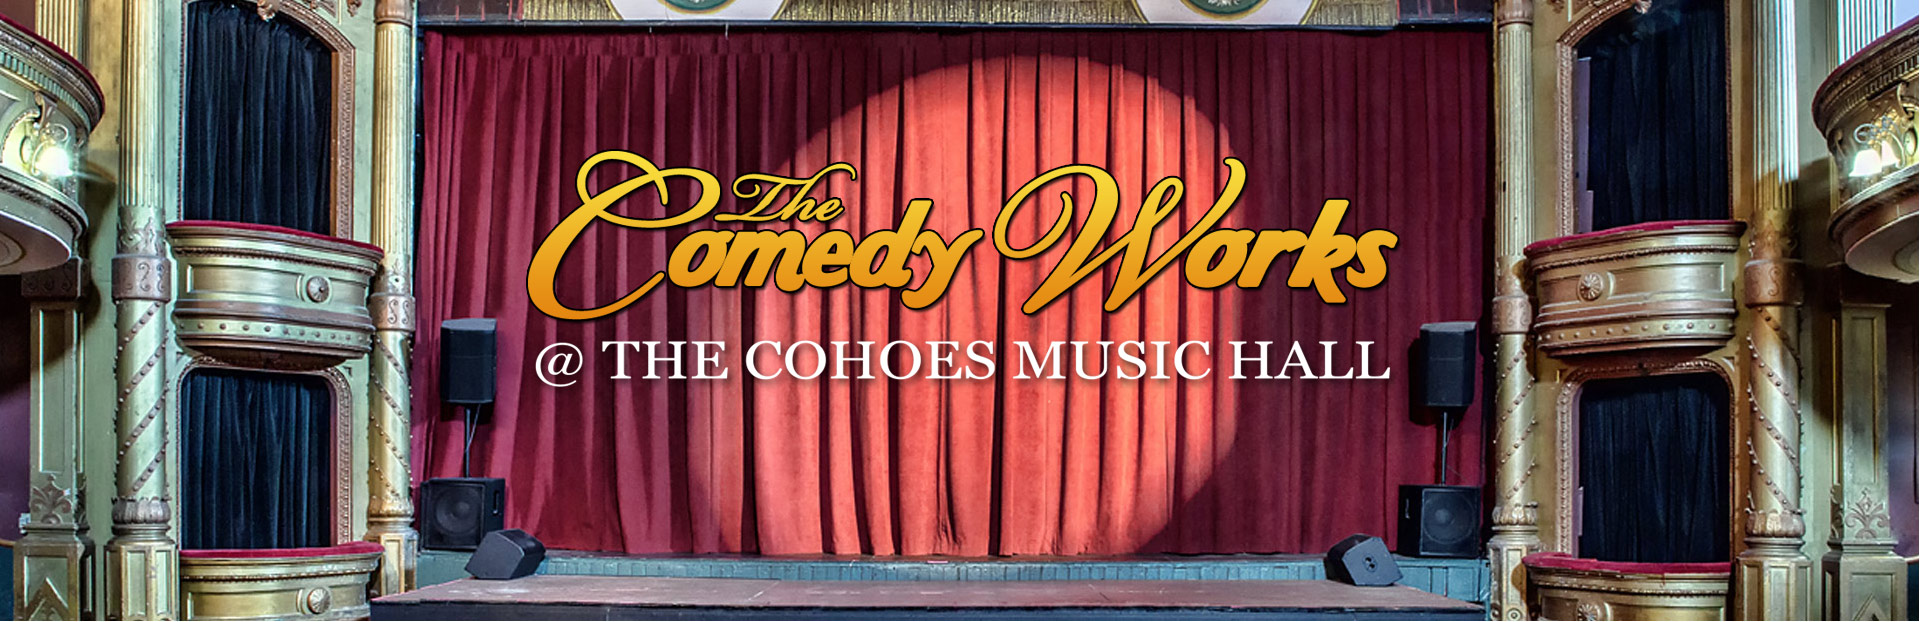 TheComedyWorks - at The Cohoes Music Hall